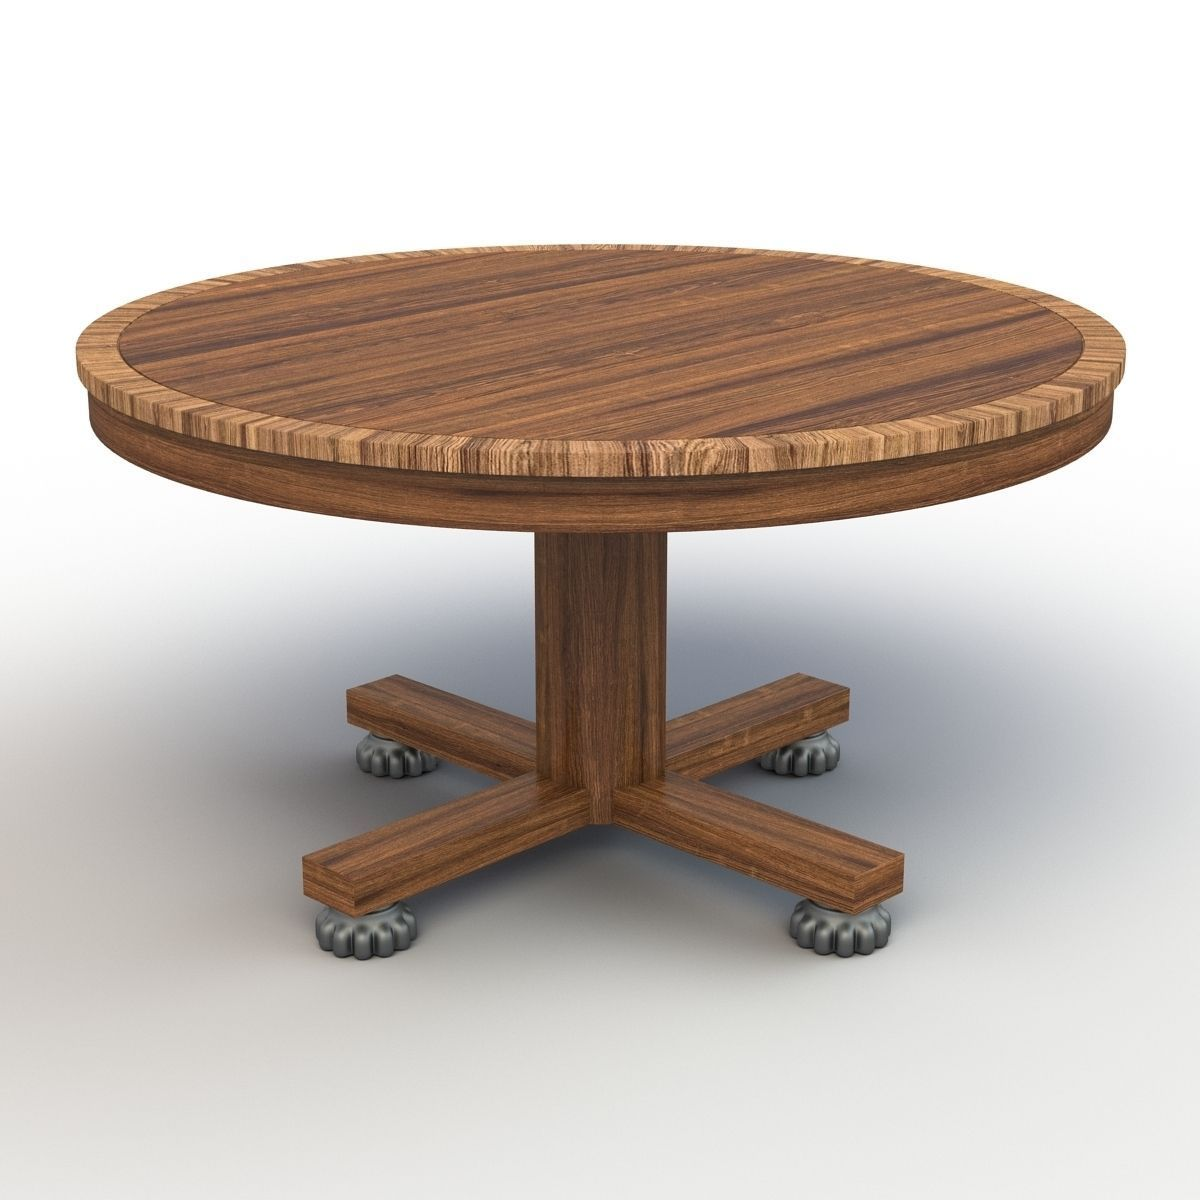 Roung dining table 3d model max obj fbx for Dining table latest model